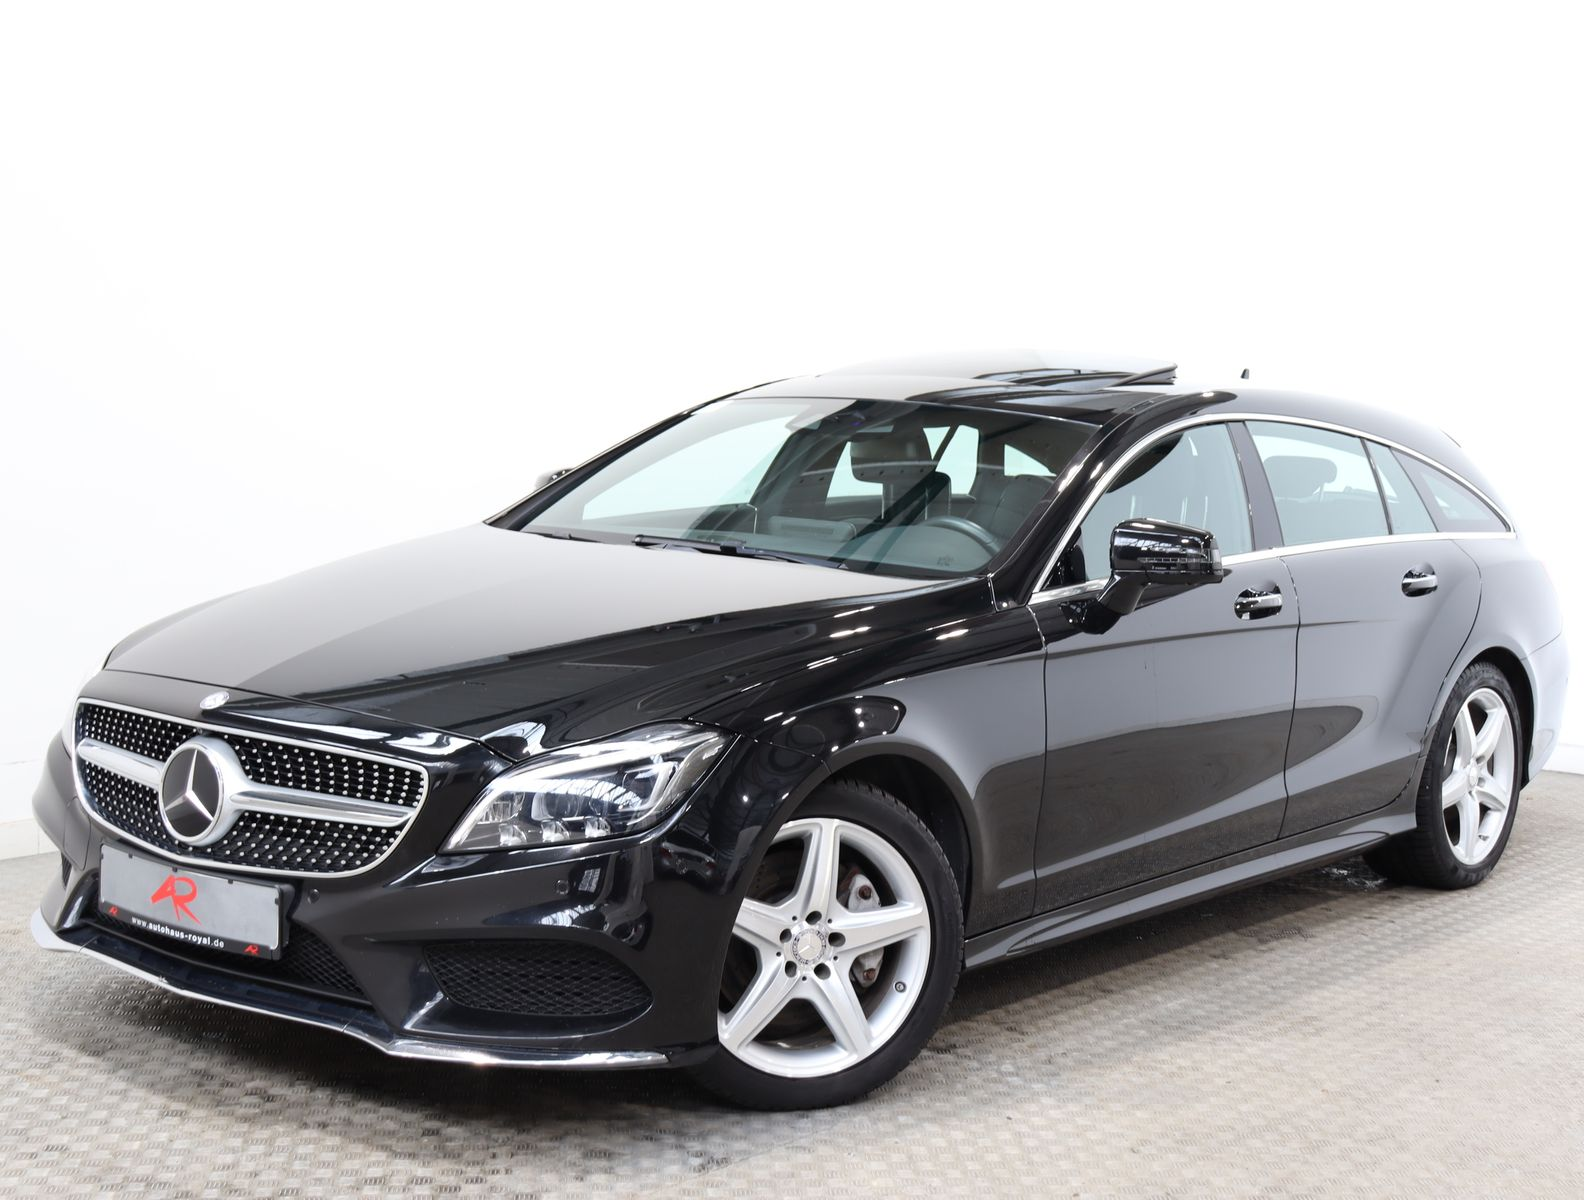 Mercedes-Benz CLS 350 Shooting Brake BT 4M AMG FOND-TV,KEYLESS, Jahr 2015, Diesel